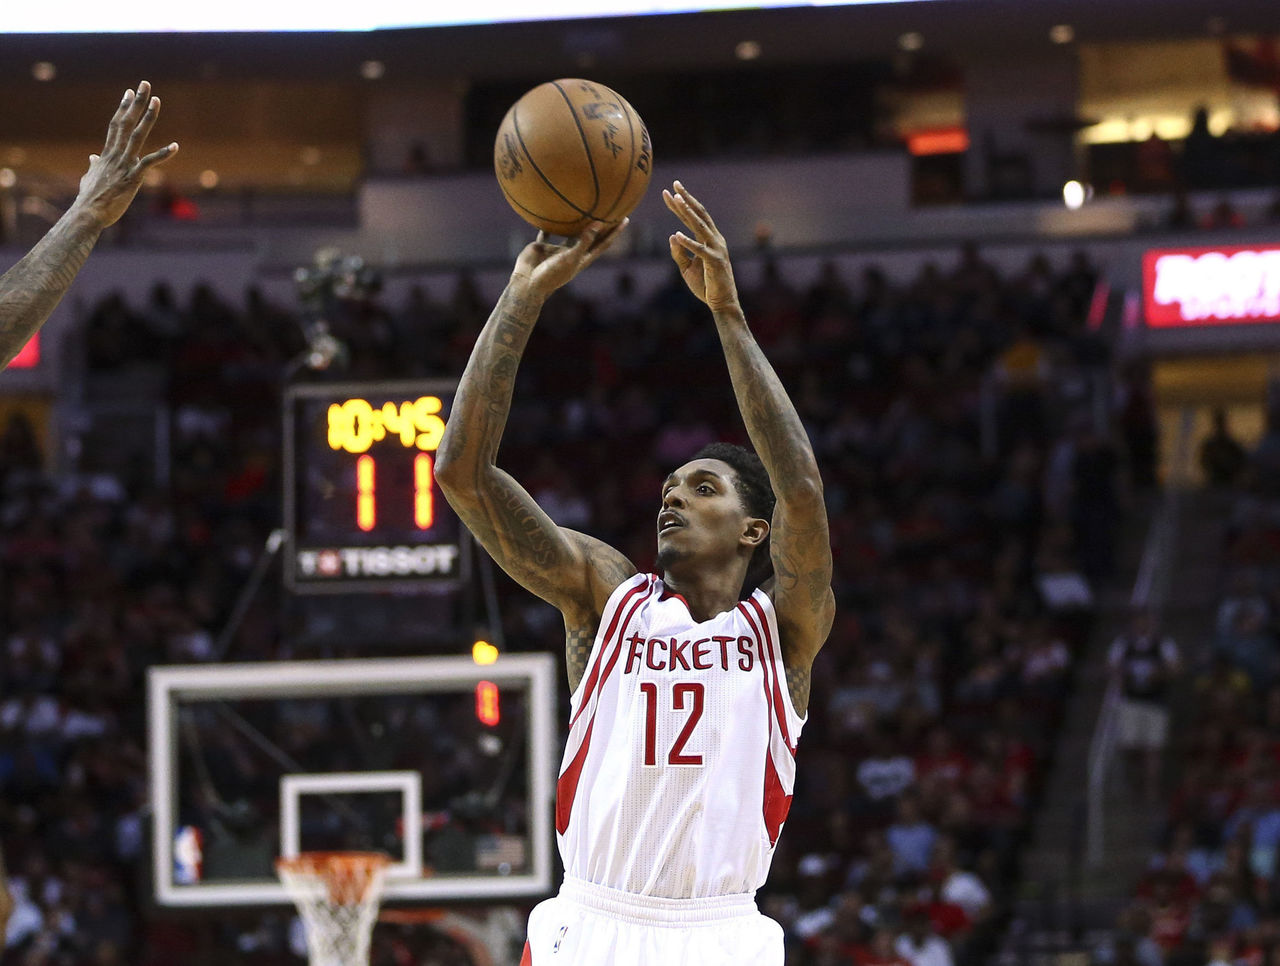 Cropped_2017-02-28t040257z_2016346365_nocid_rtrmadp_3_nba-indiana-pacers-at-houston-rockets